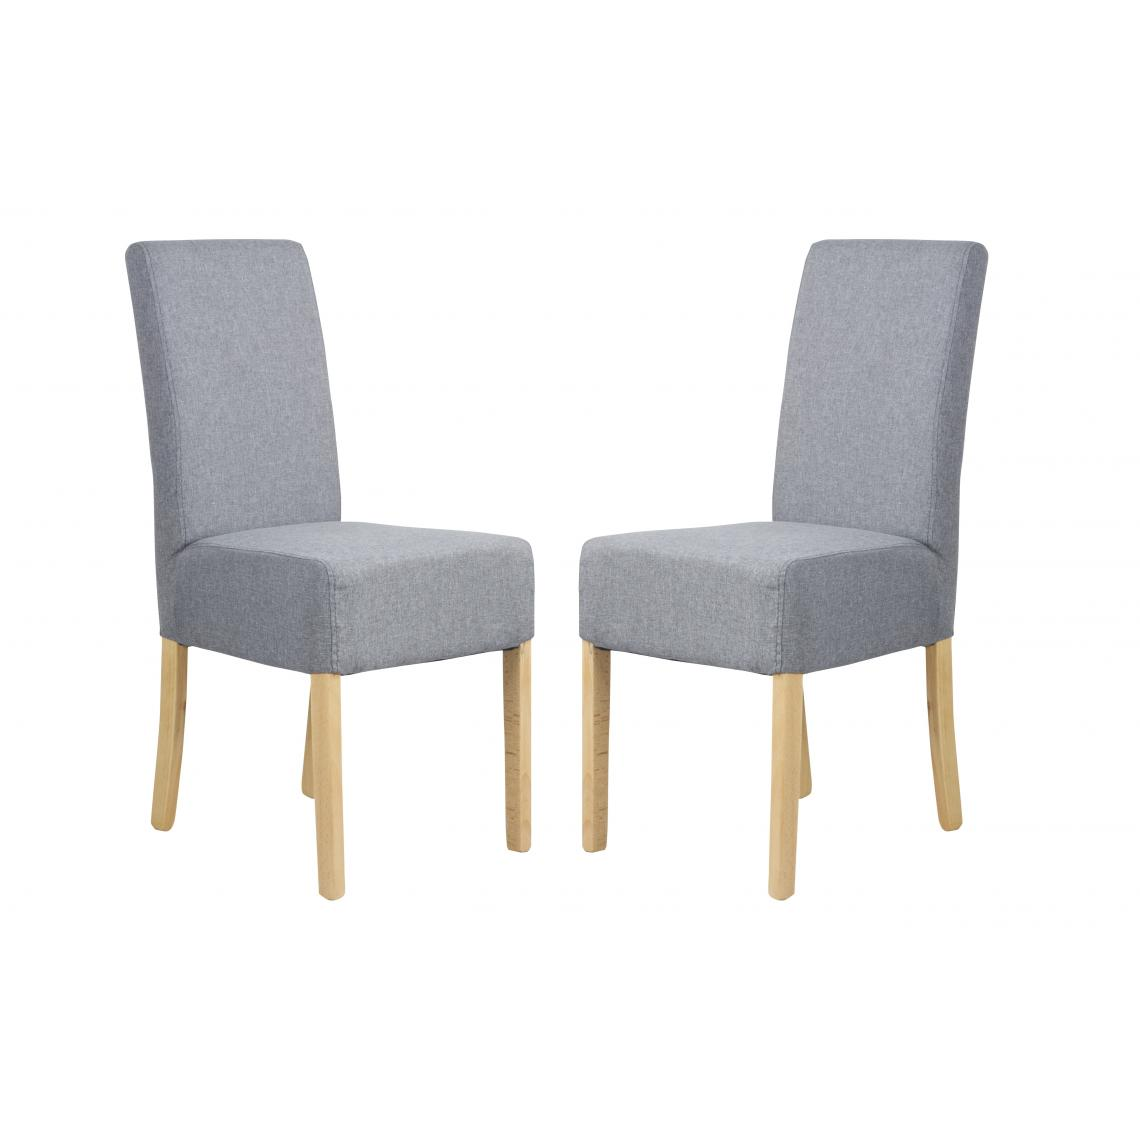 lot de 2 chaises dossiers hauts gris vino 3suisses. Black Bedroom Furniture Sets. Home Design Ideas